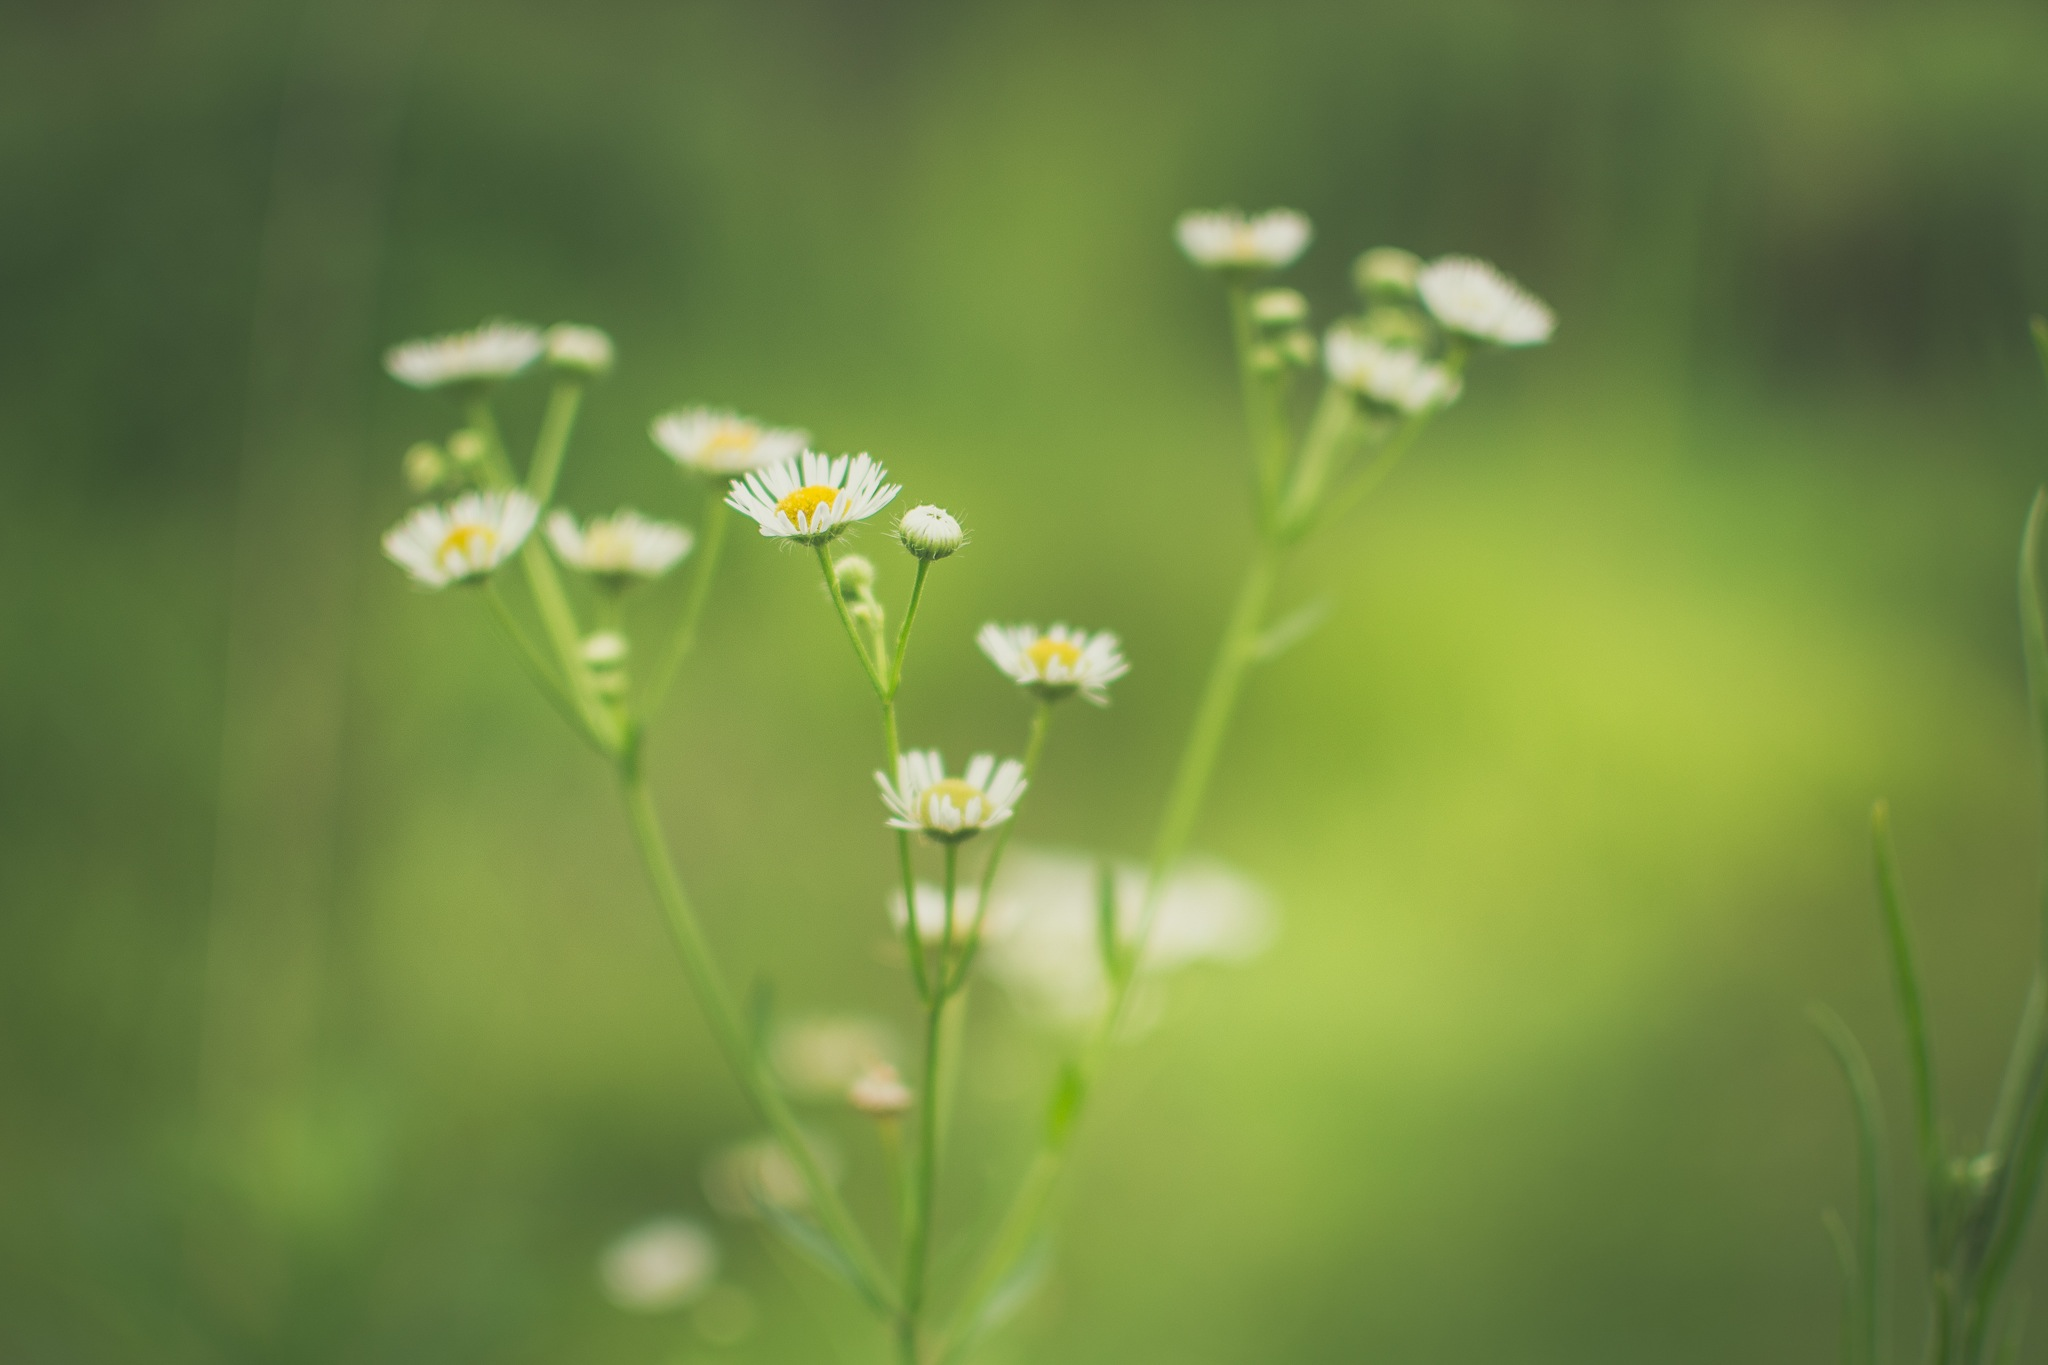 Daisies in spring, plants, nature, greenery, flowers, daisies, white, yellow, flower, spring, summer